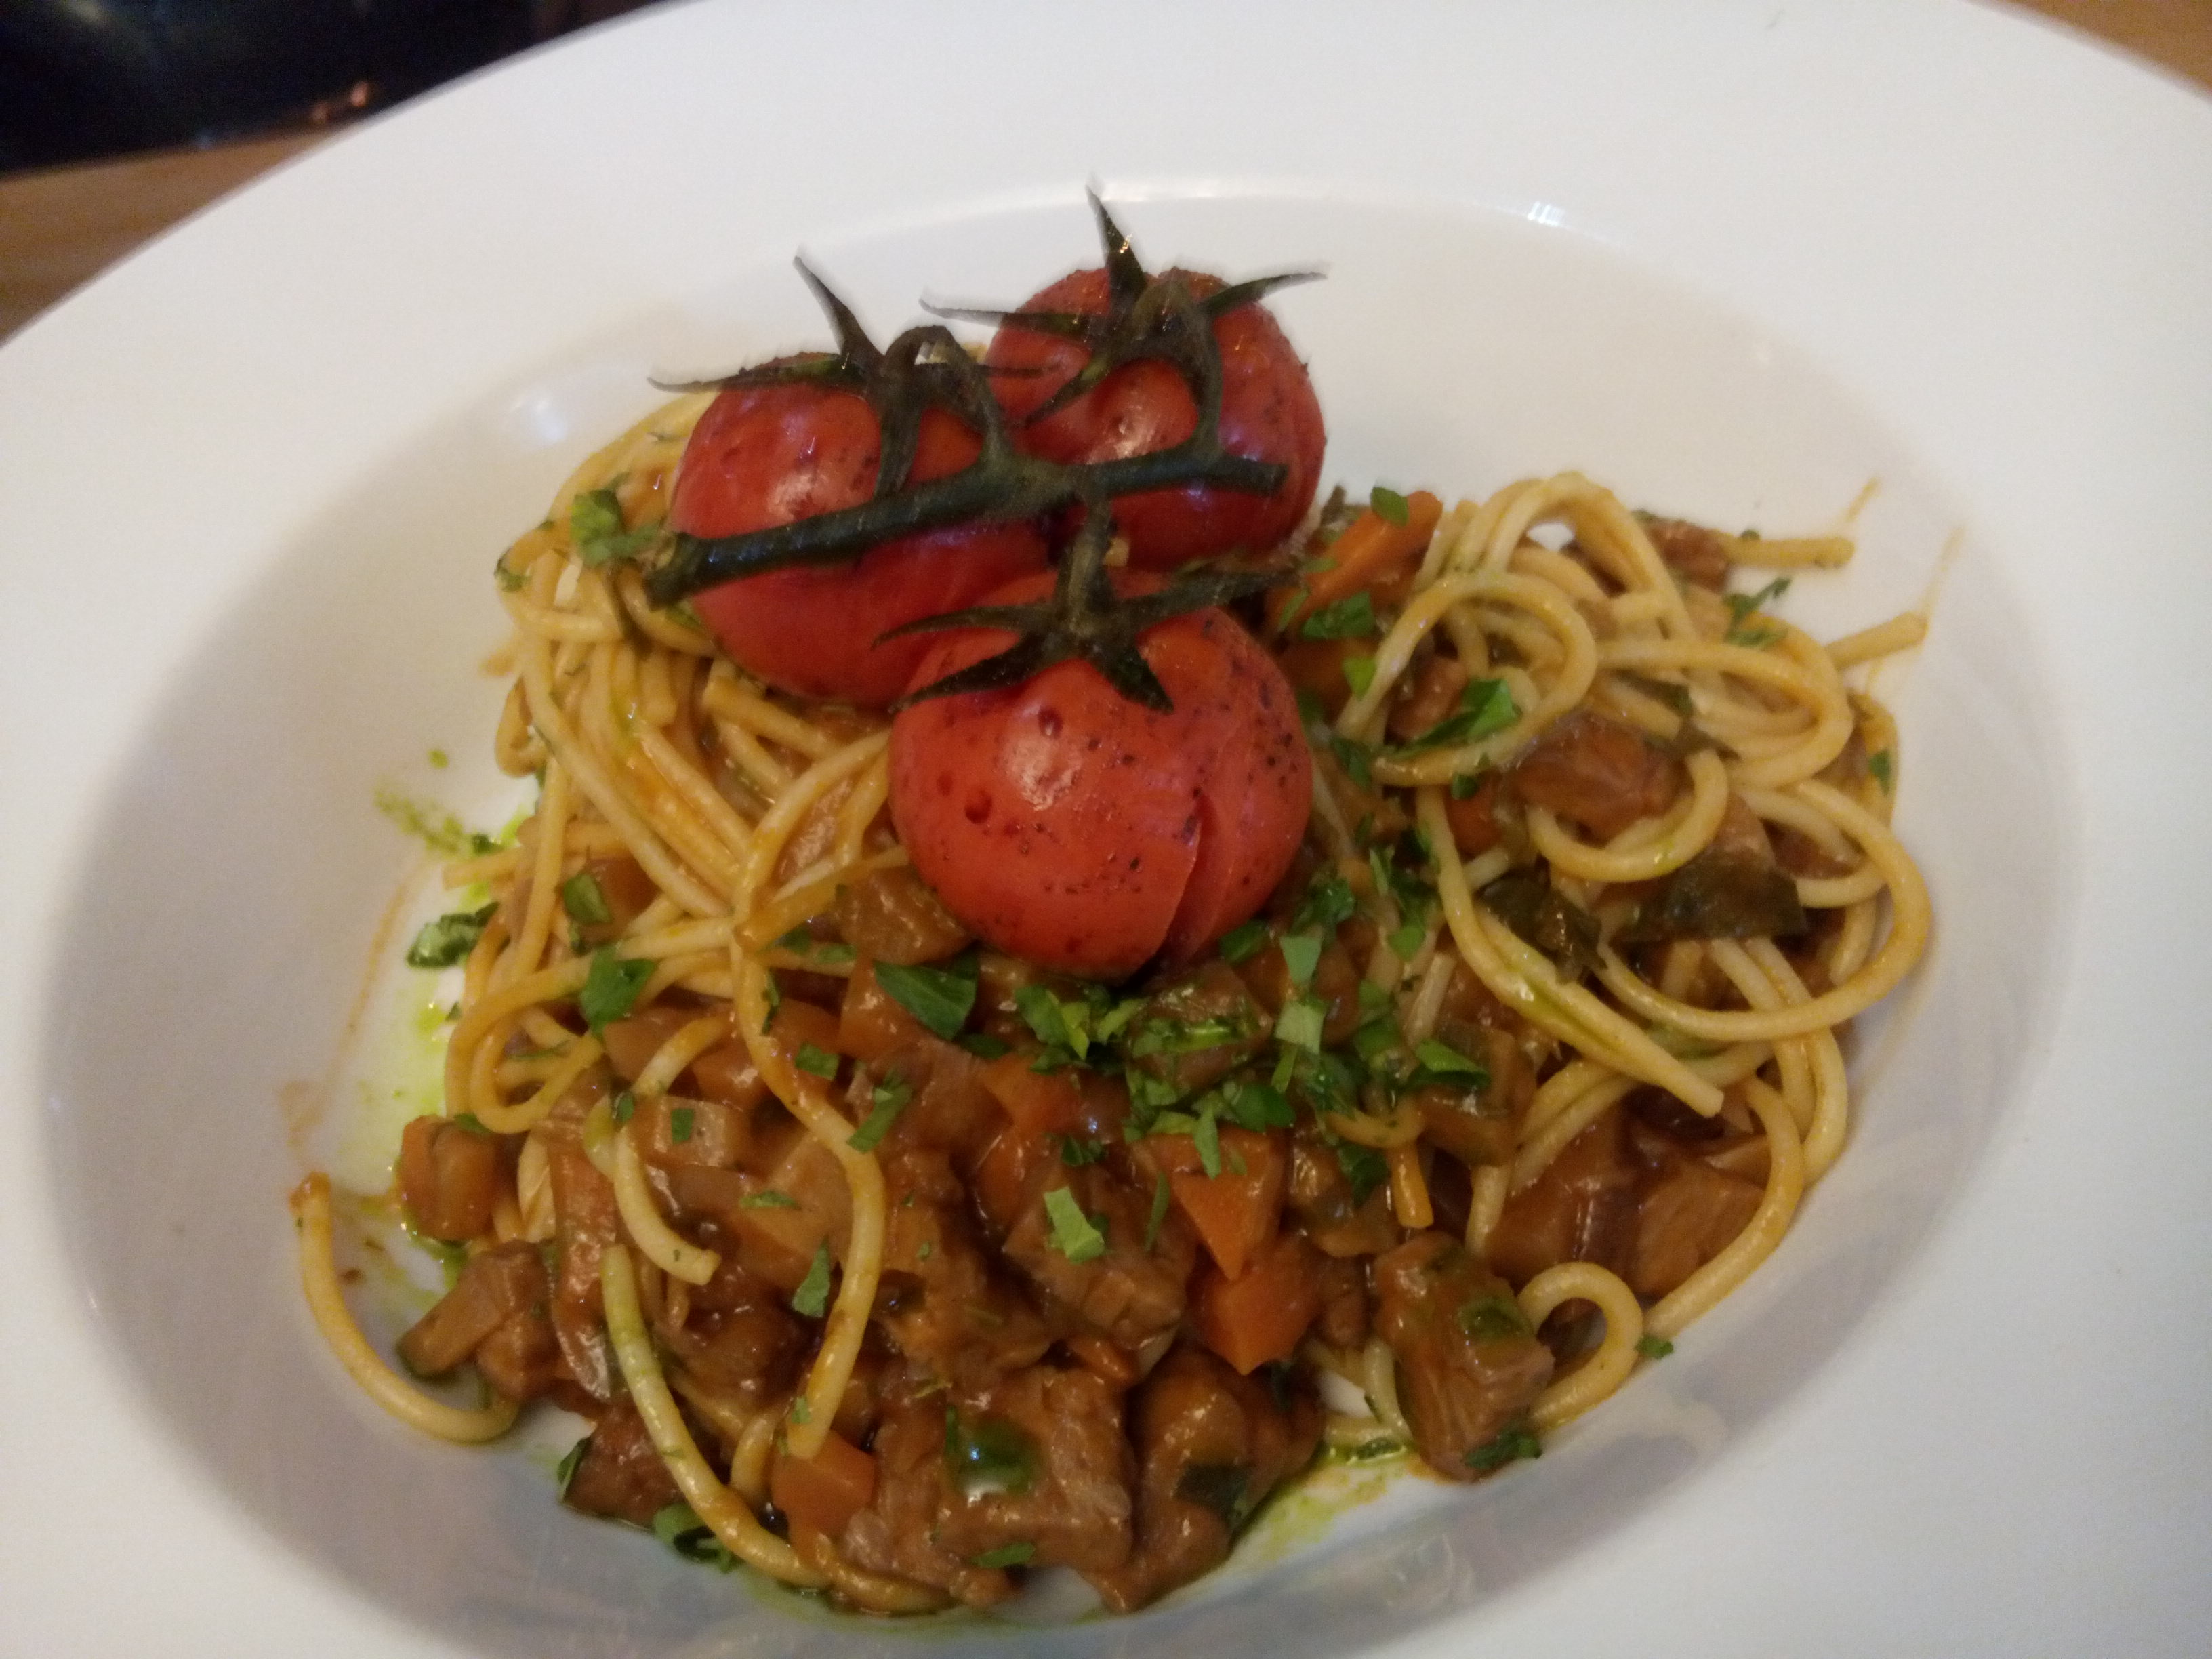 A wide white bowl with spaghetti mixed with red and brown chunky sauce, three roasted cherry tomatoes on top, still attached to the vine